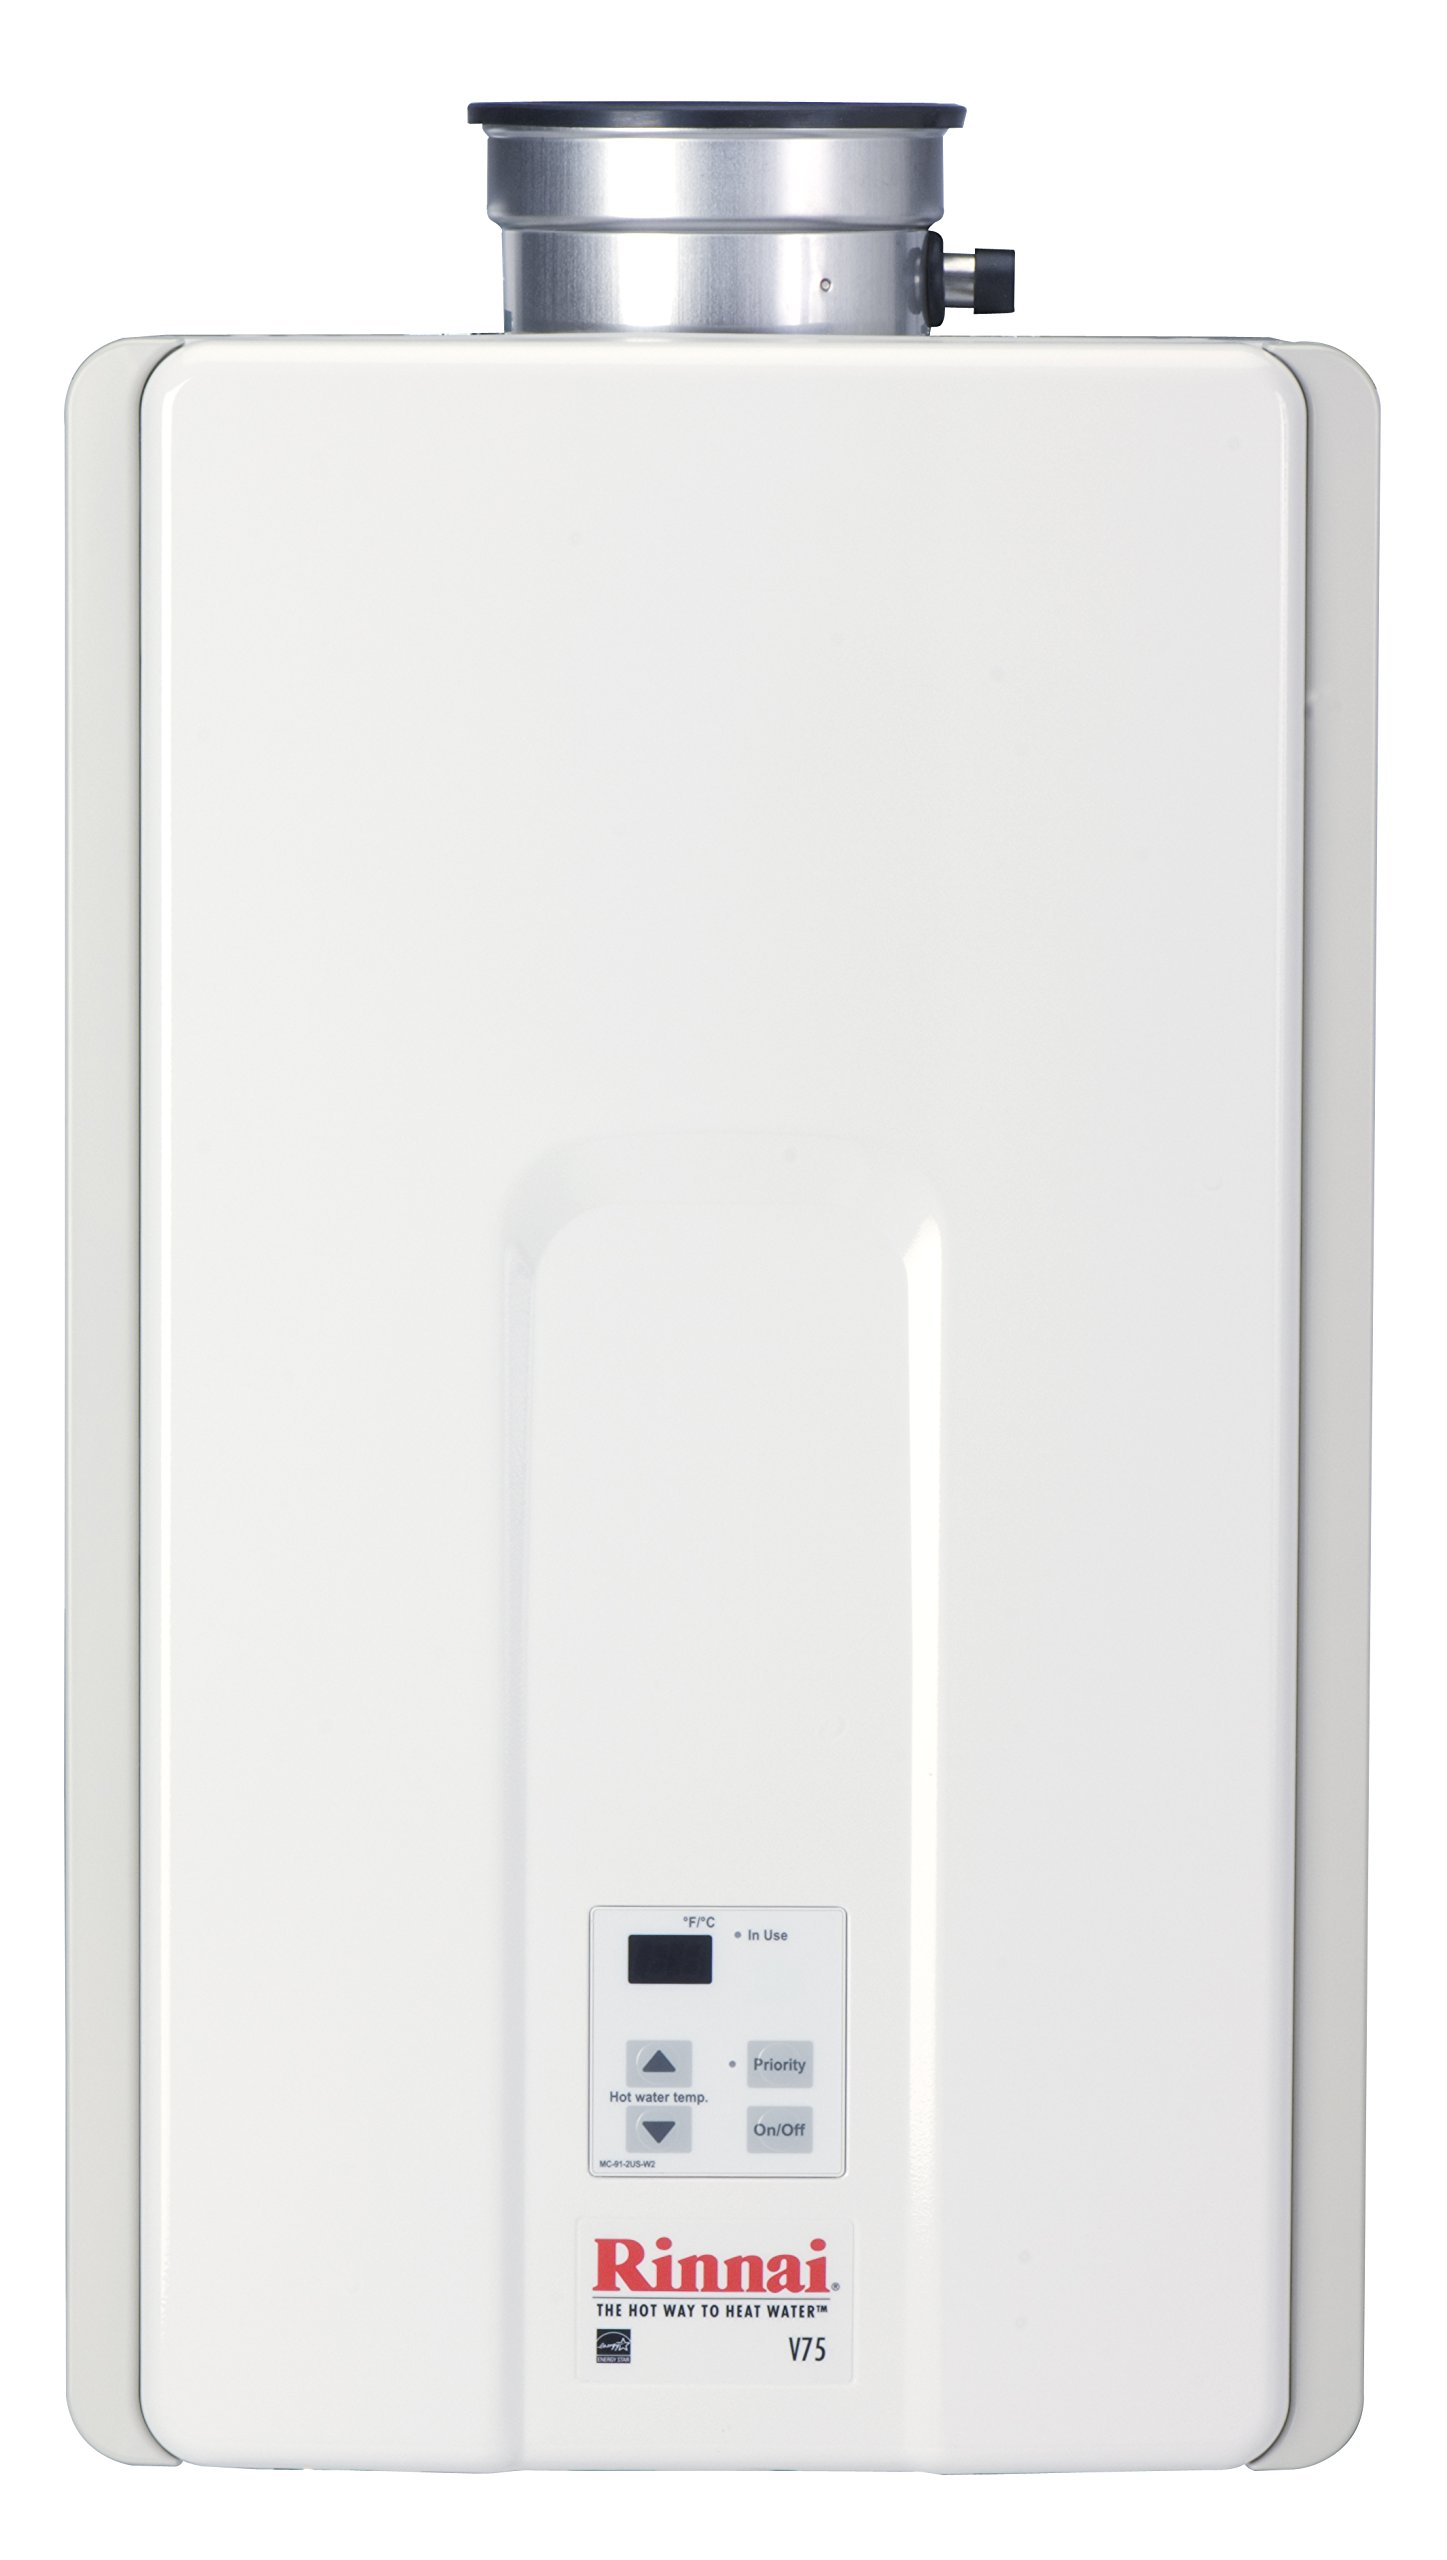 Rinnai V75IN 7.5 GPM Indoor Low NOx Tankless Natural Gas Water Heater